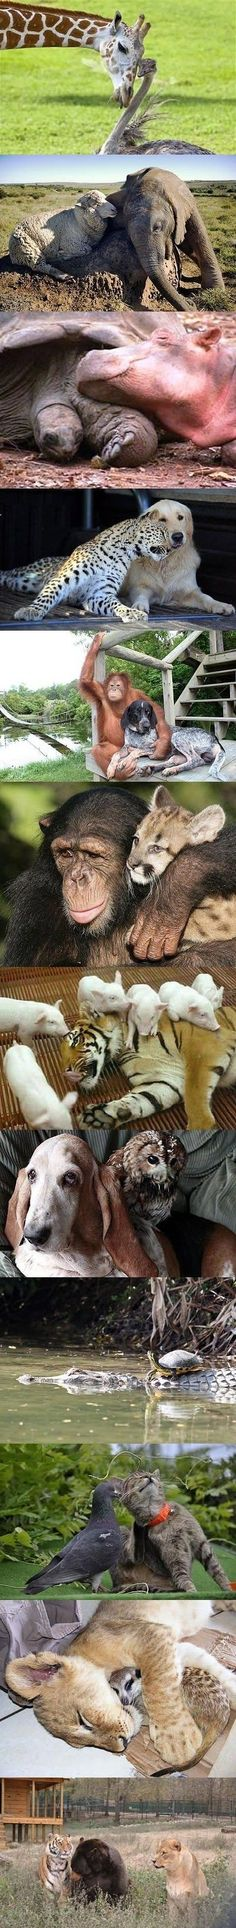 Unlikely friendships